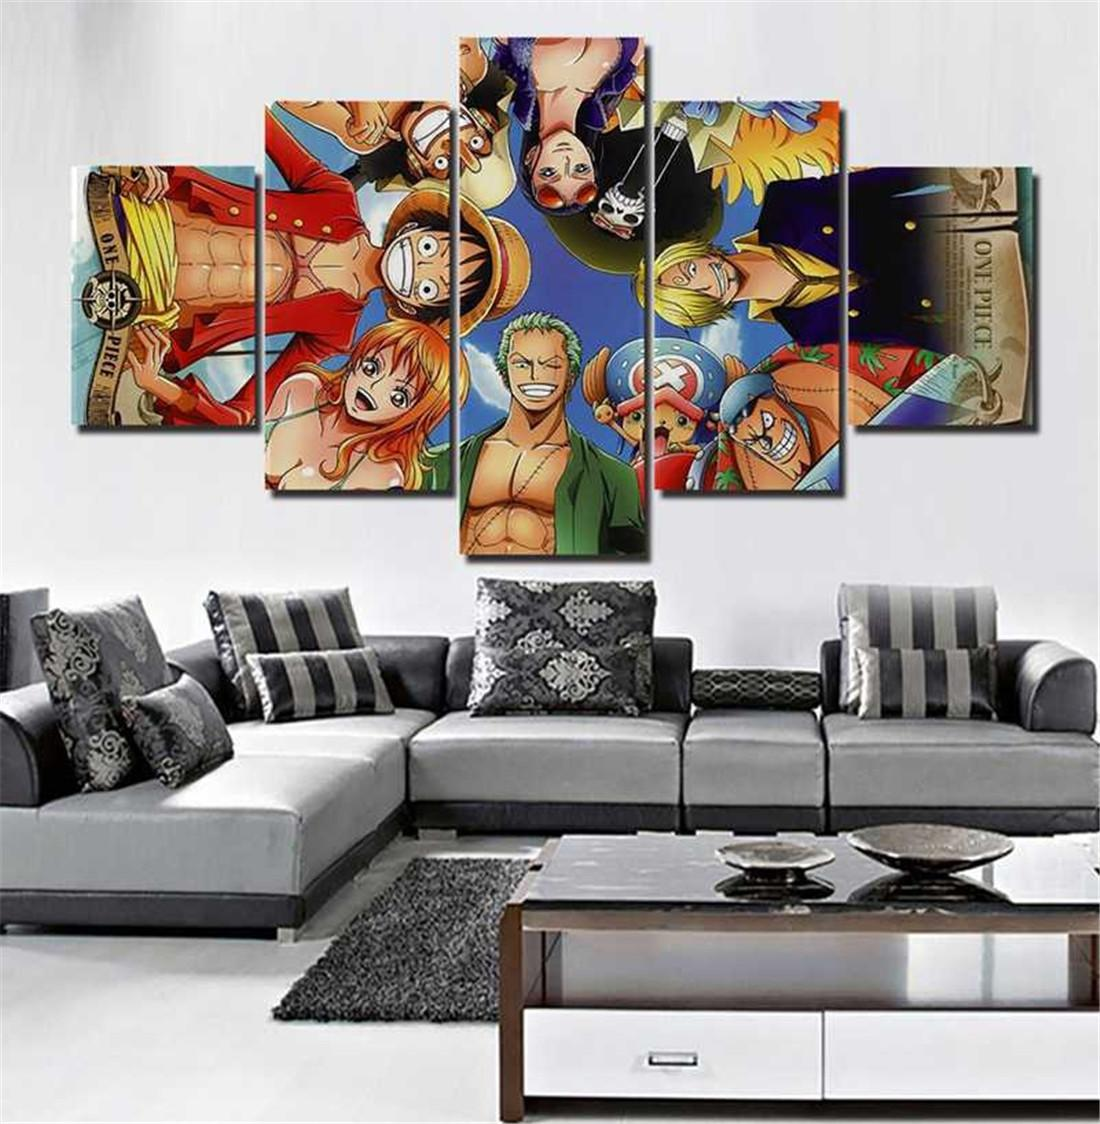 Anime one piece 55 pieces canvas prints wall art oil painting home decor unframed framed